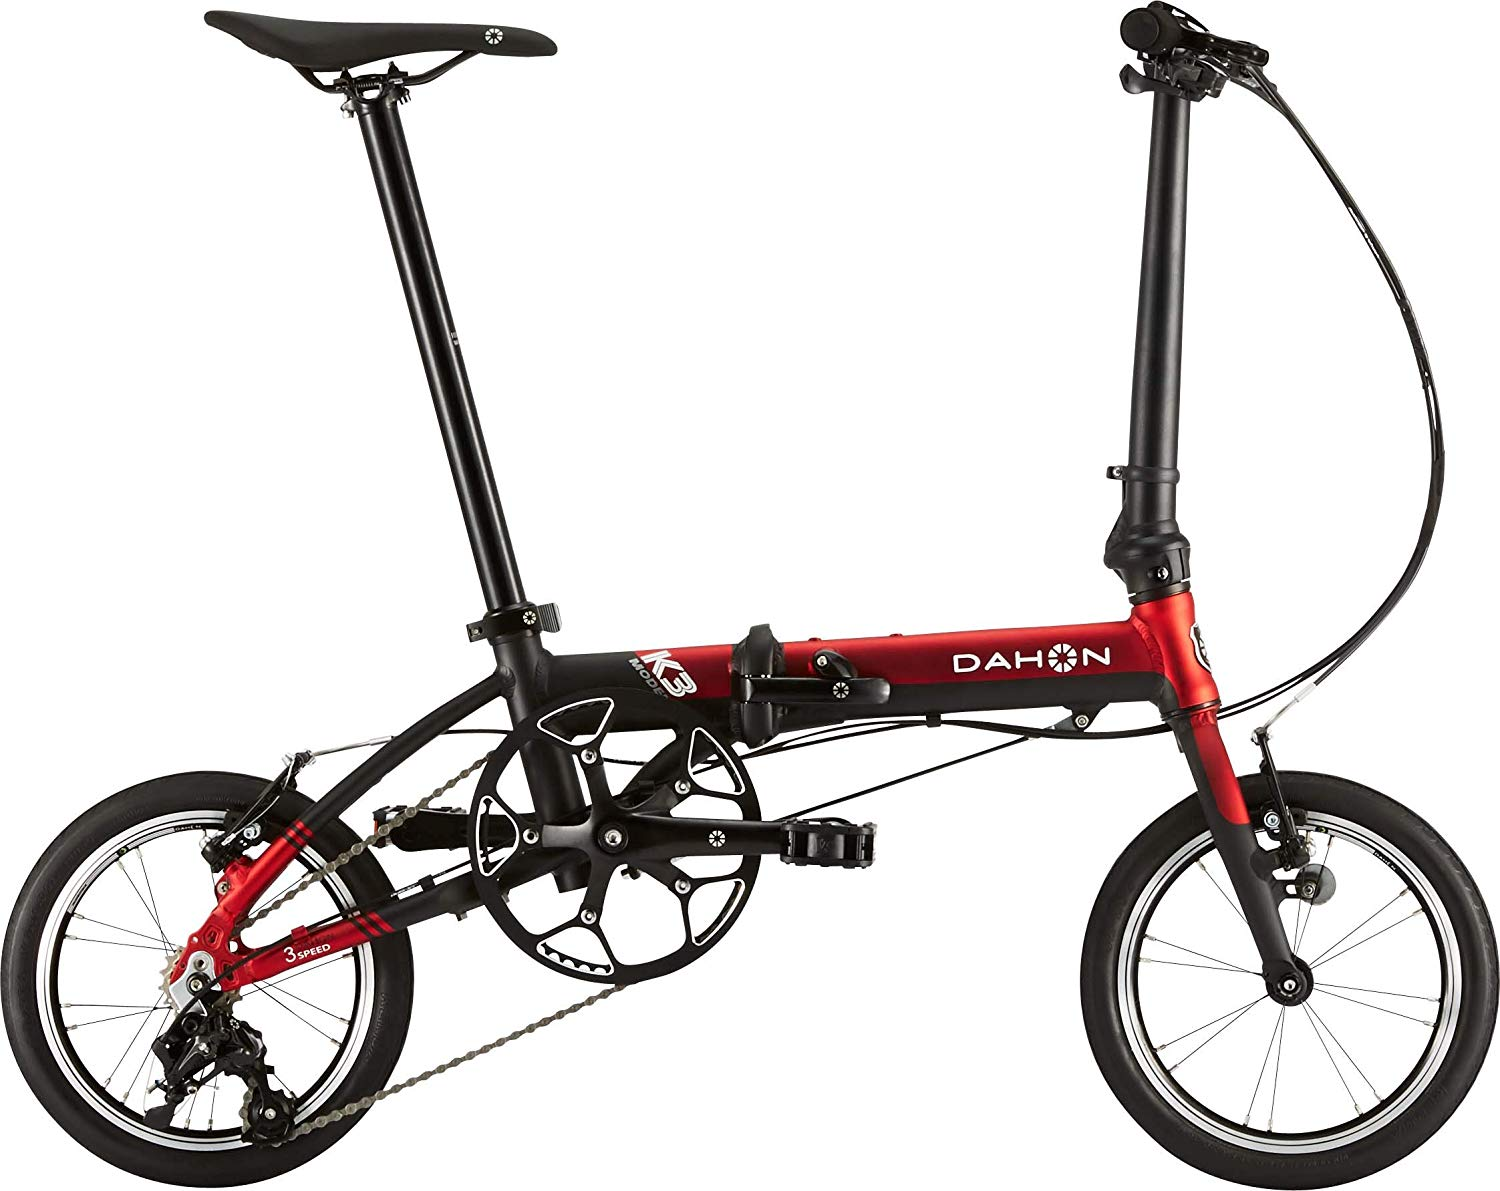 New Dahon Folding Bikes Released In